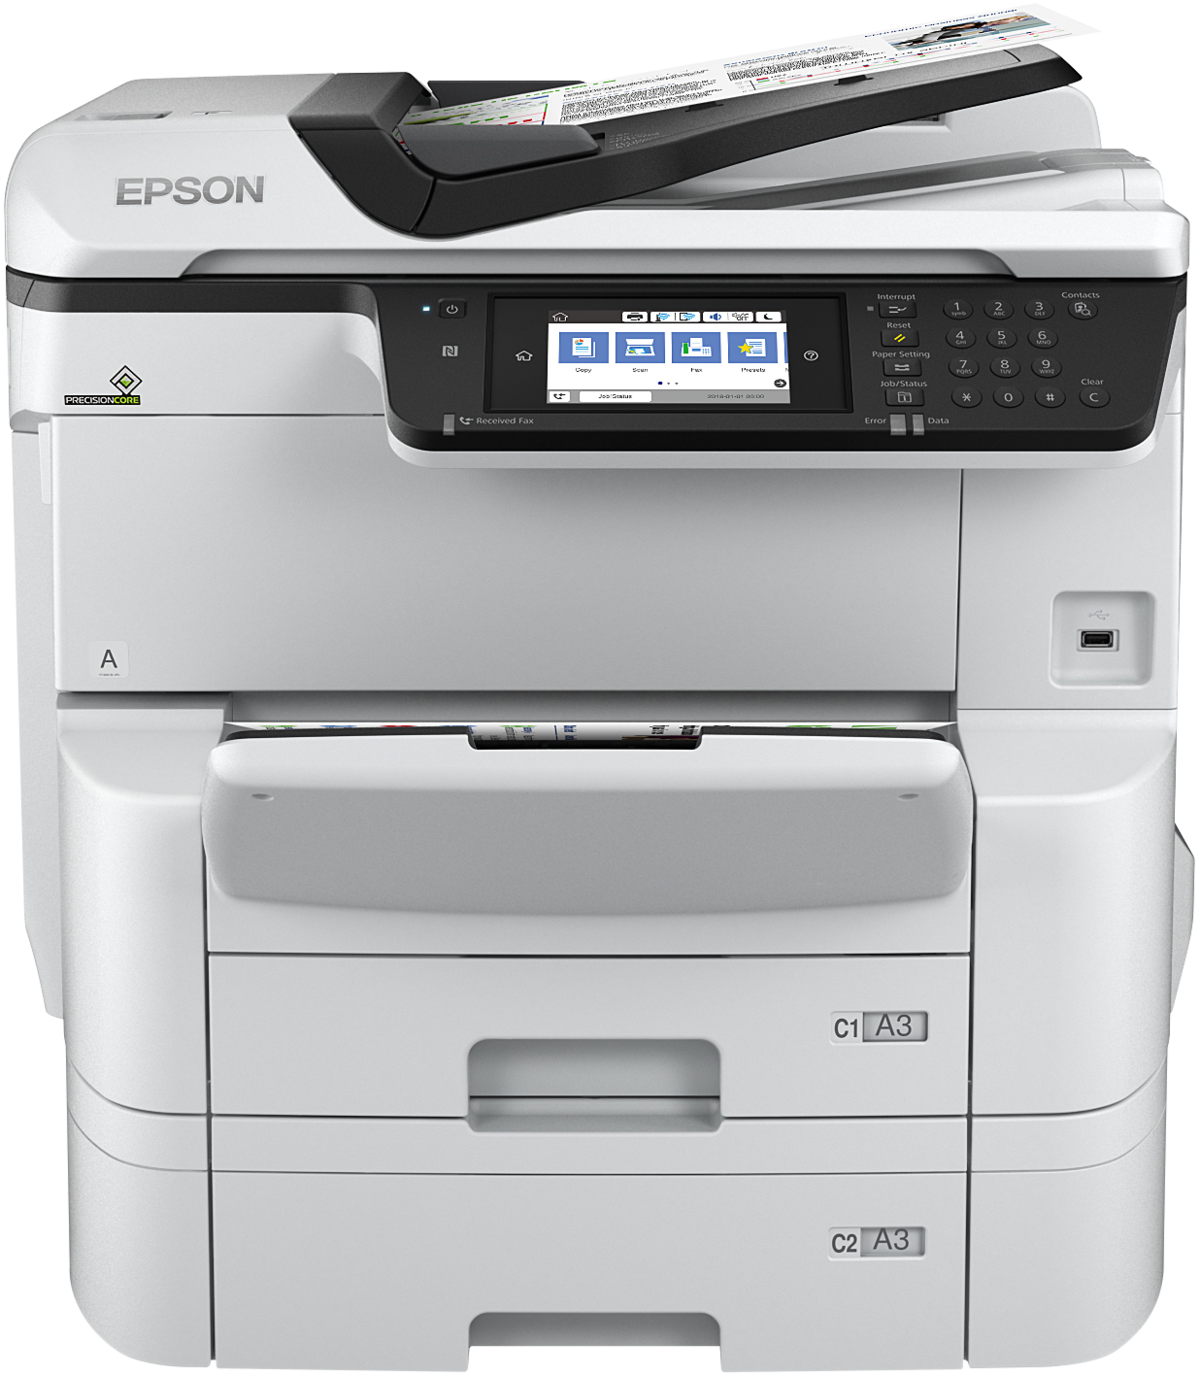 Workforce Pro Wf-c8690dtwf - Color All-in-one Printer - Inkjet - A3 - Wi-Fi  / Ethernet / USB